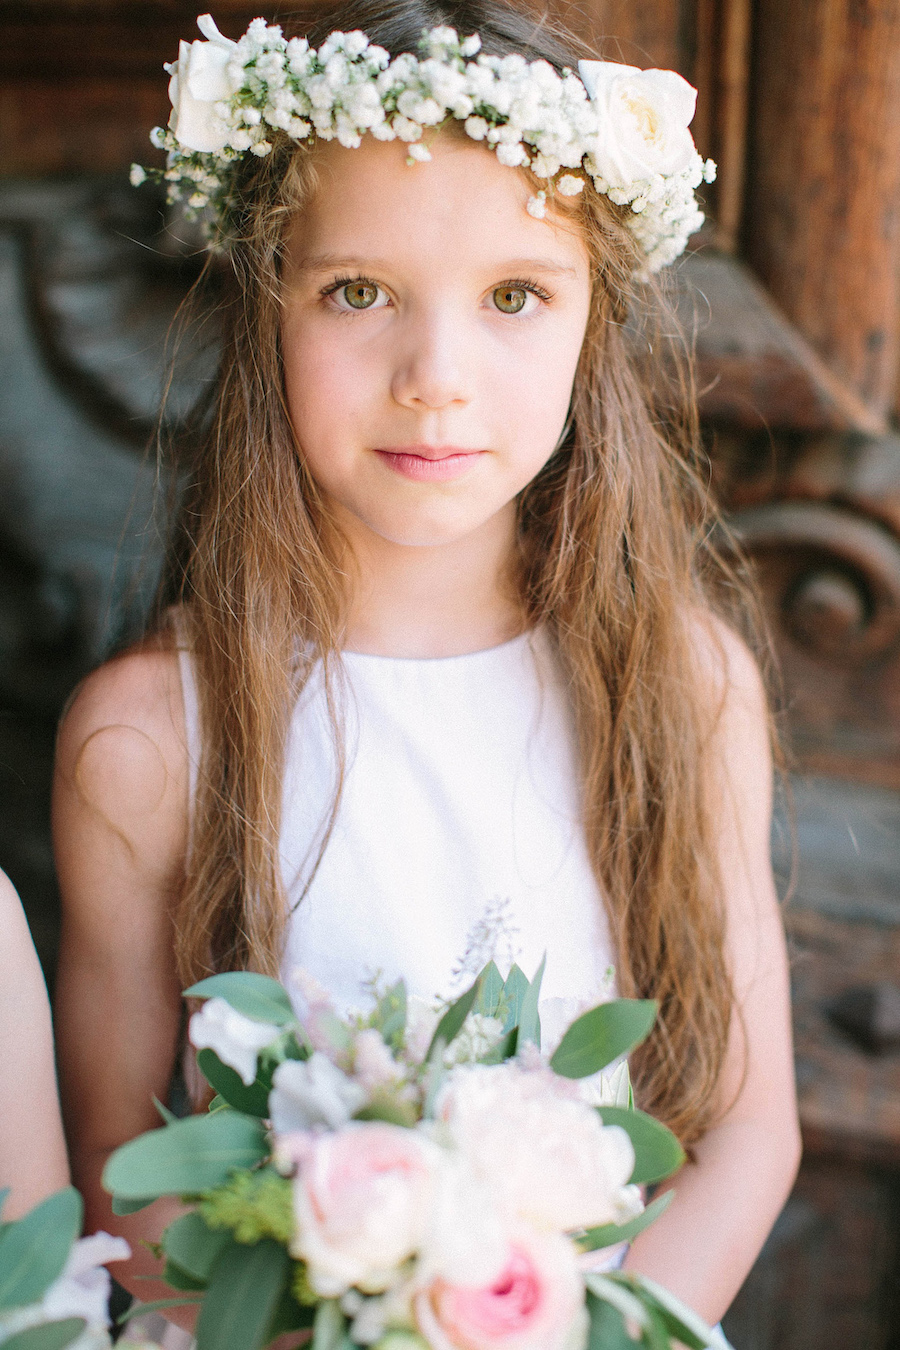 saya-photography-romantic-church-wedding-provence-flower-girls-.jpg